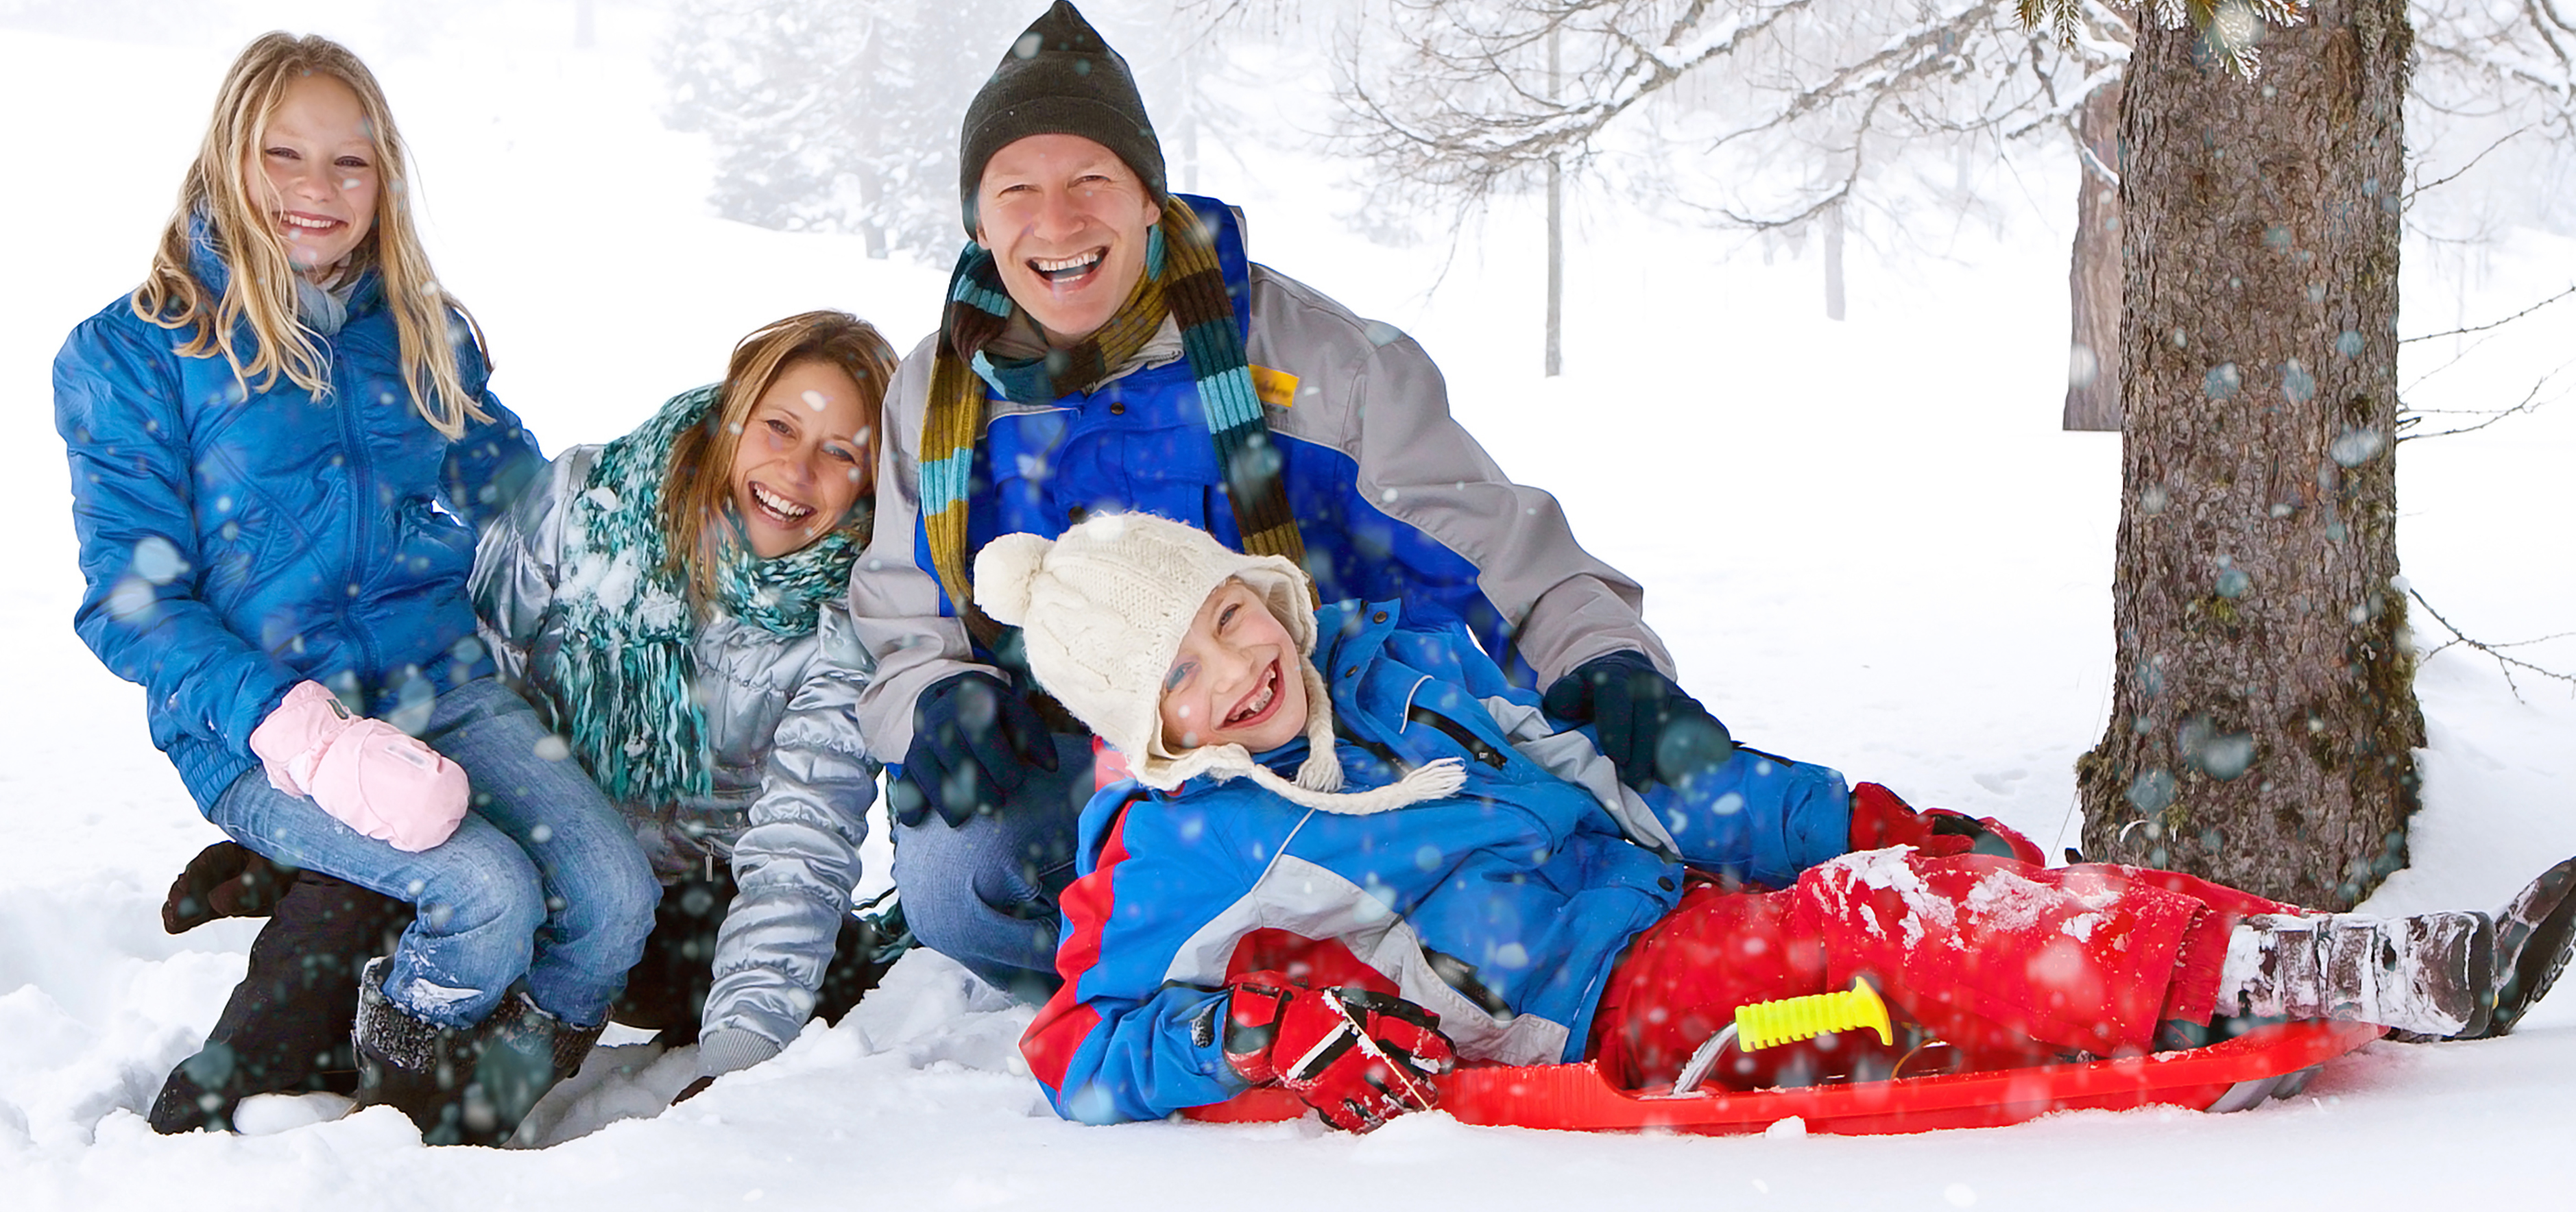 Happy family playing in the snow